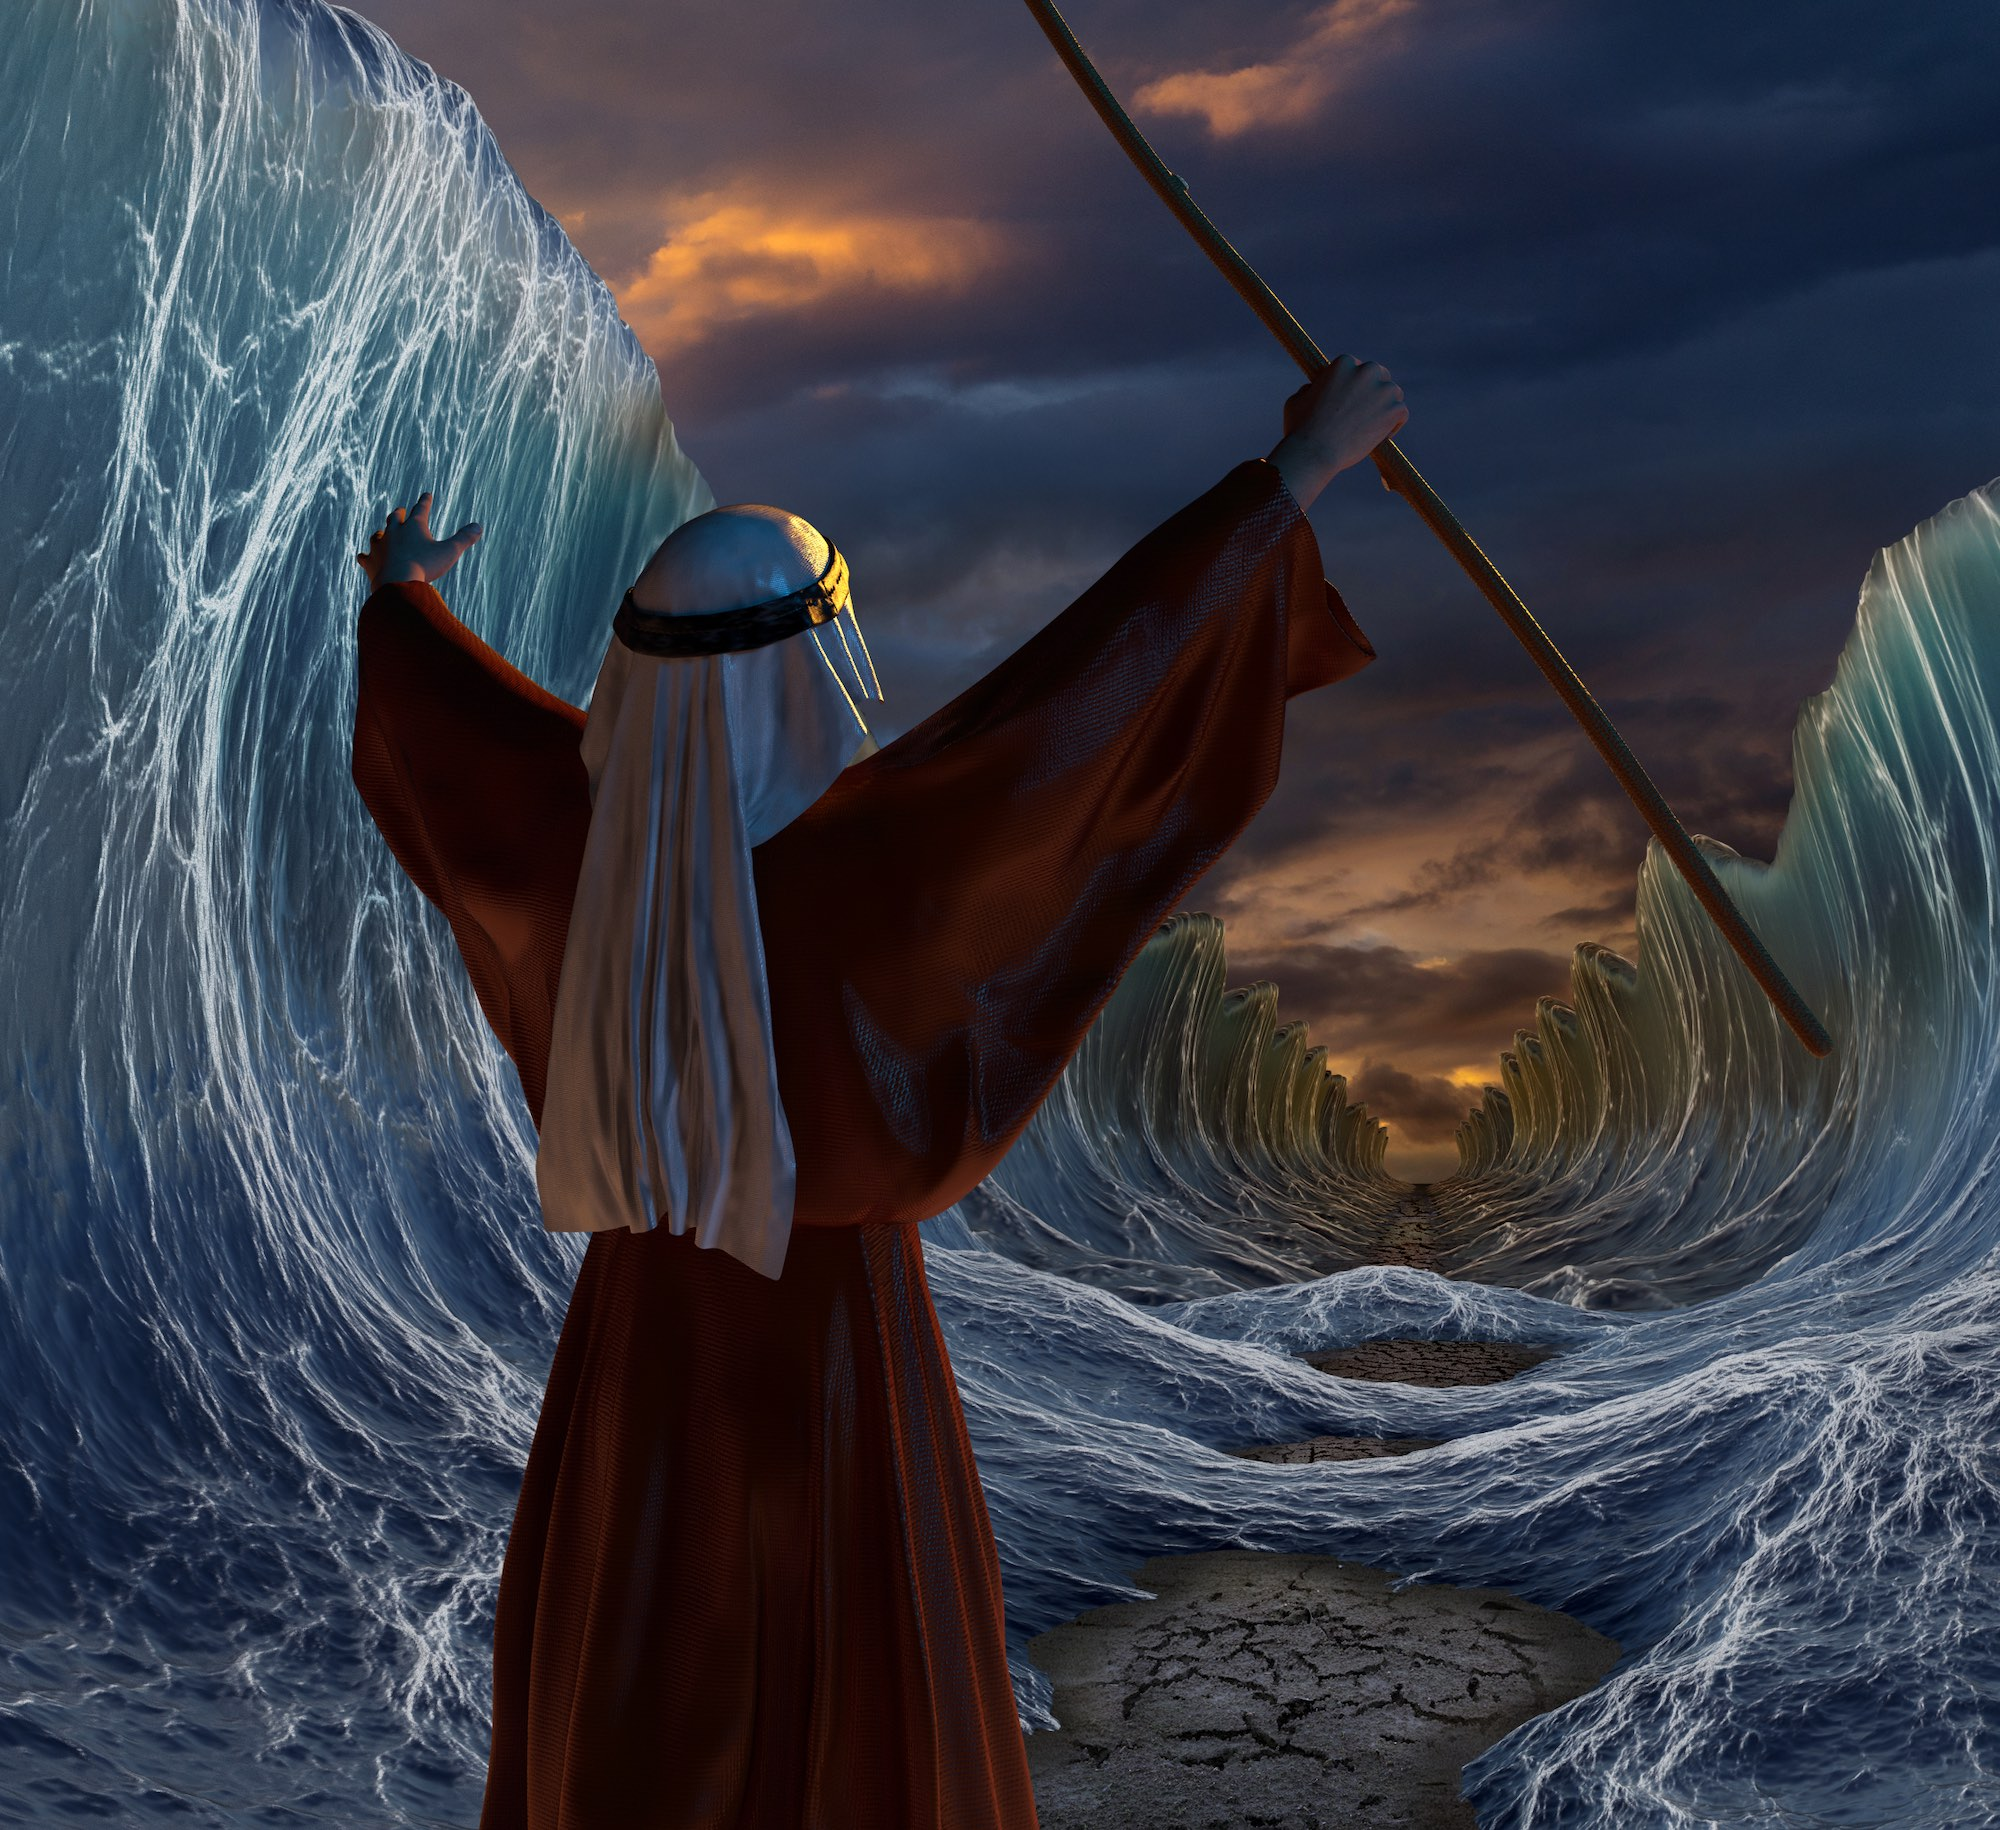 rendering of man (moses) parting the Red Sea